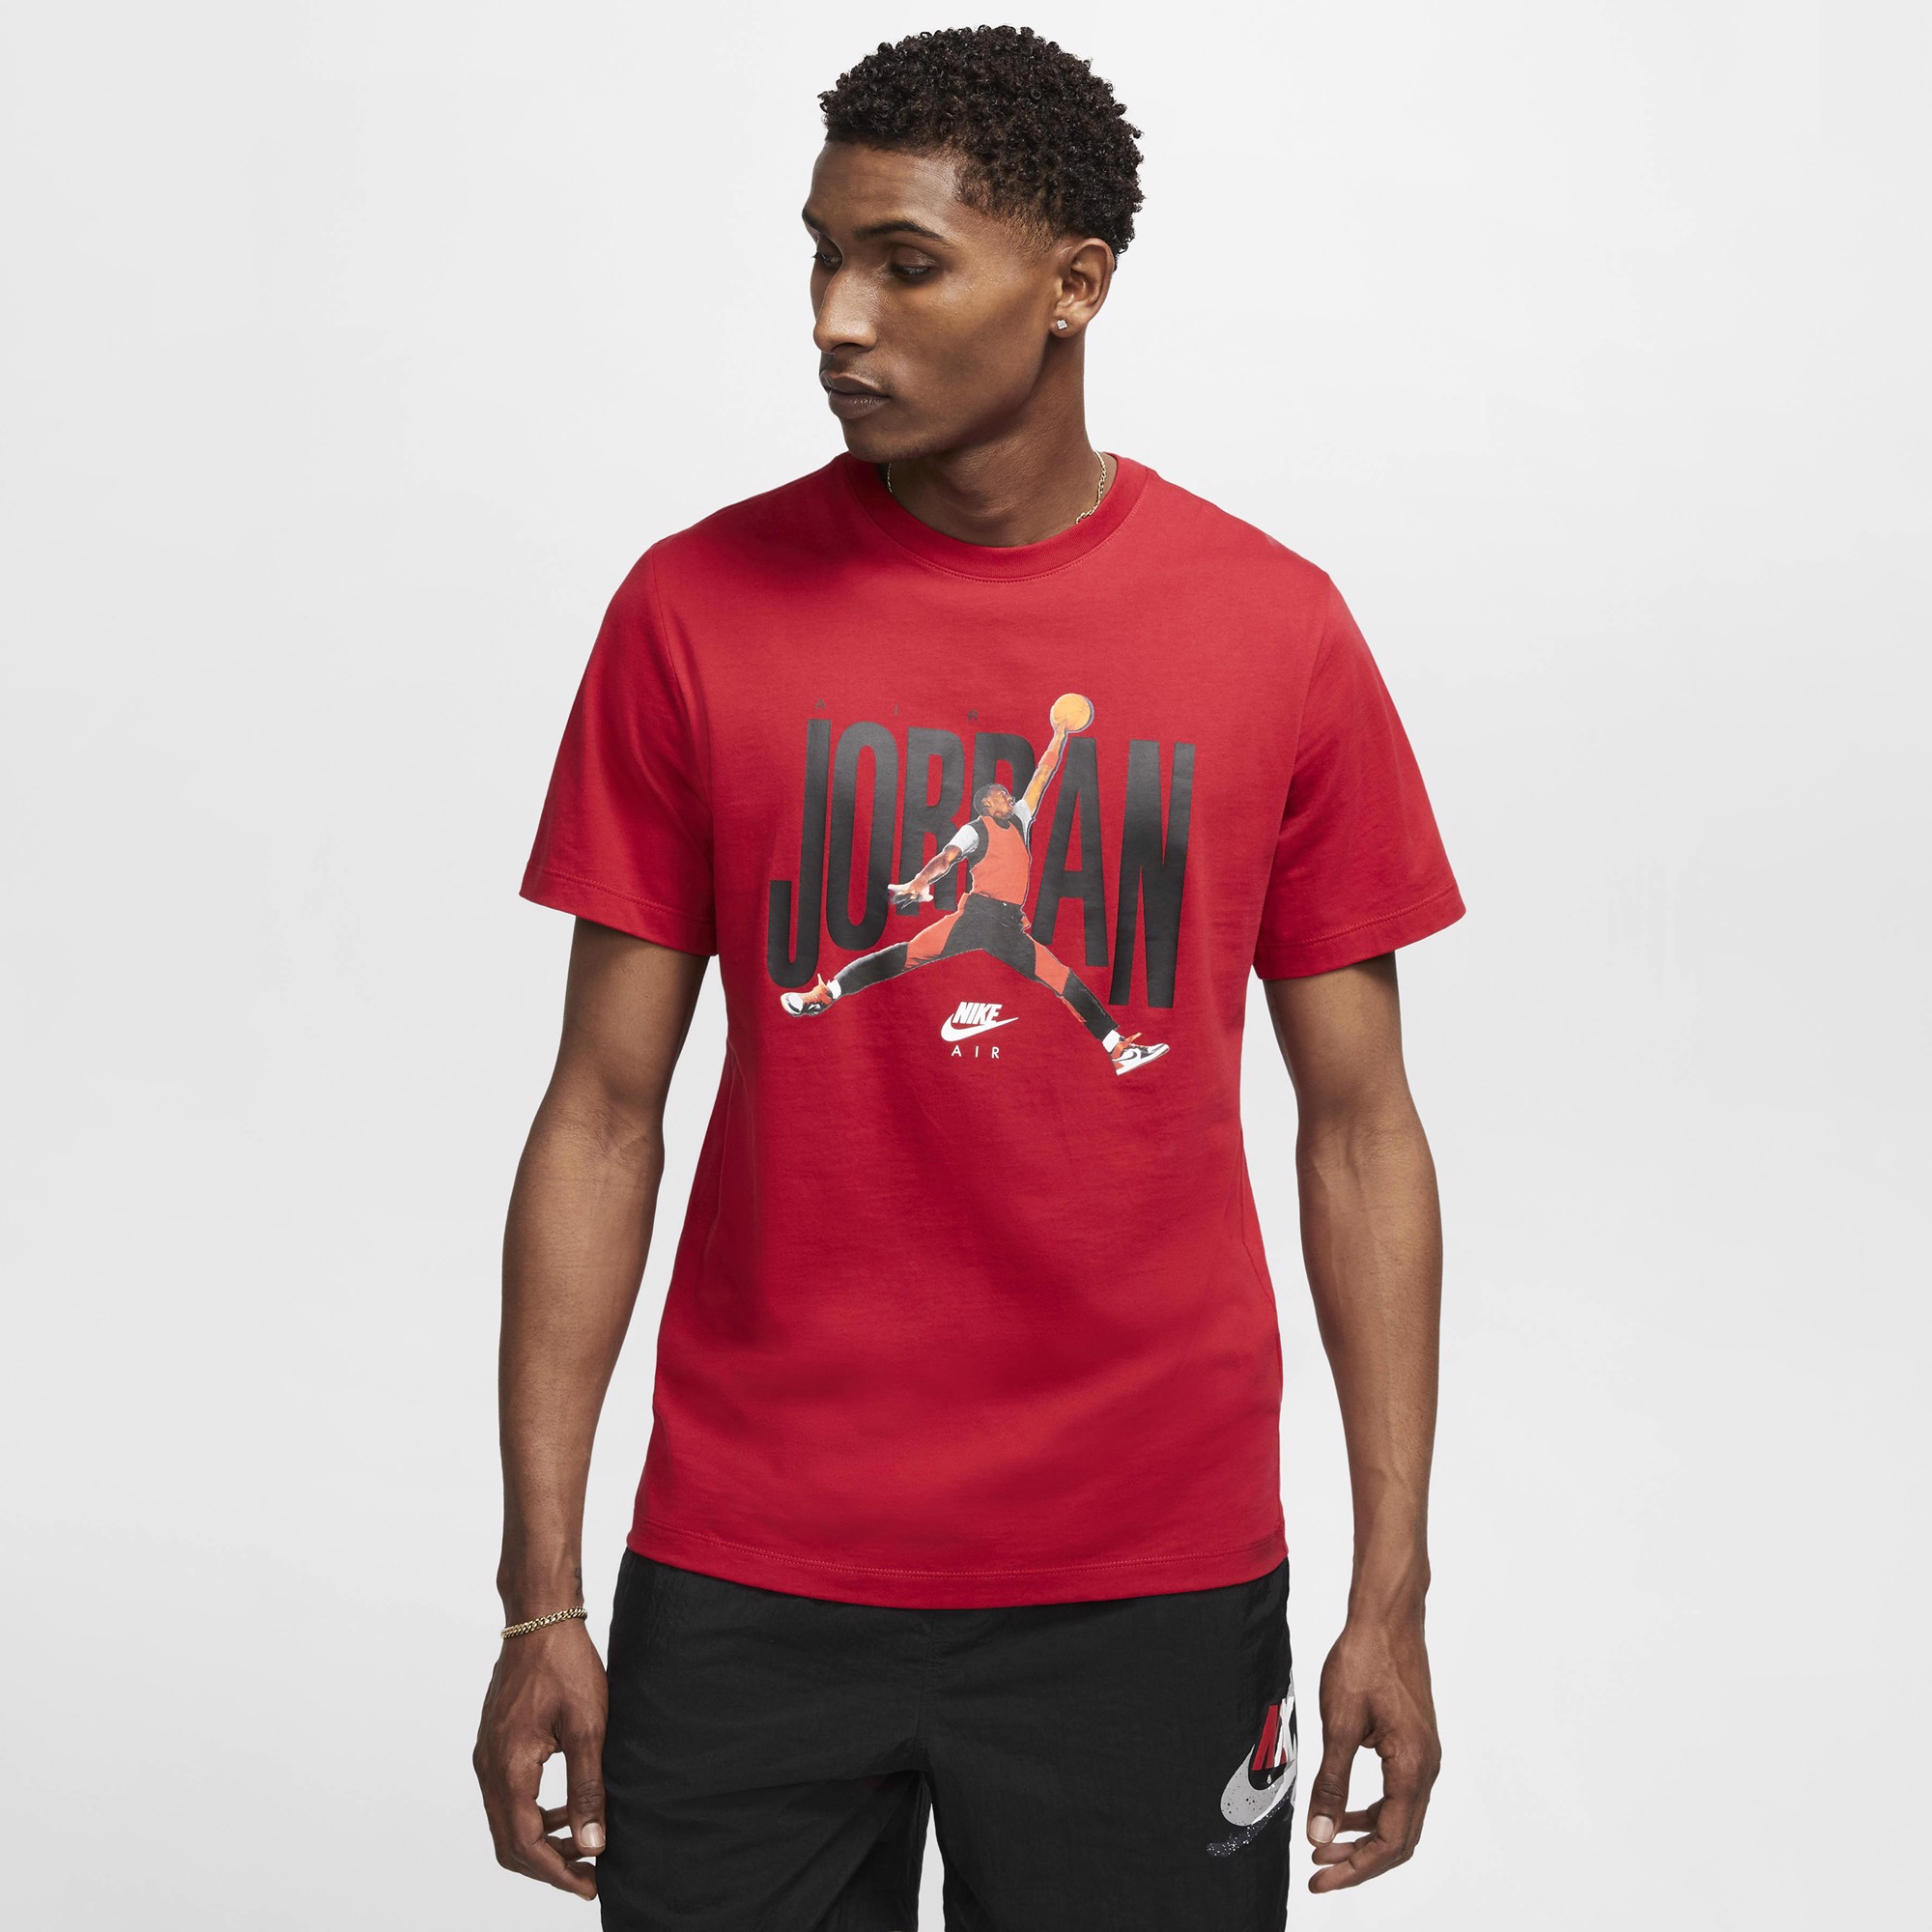 Jordan Short-Sleeve Crew 'Flight Muse' - Red